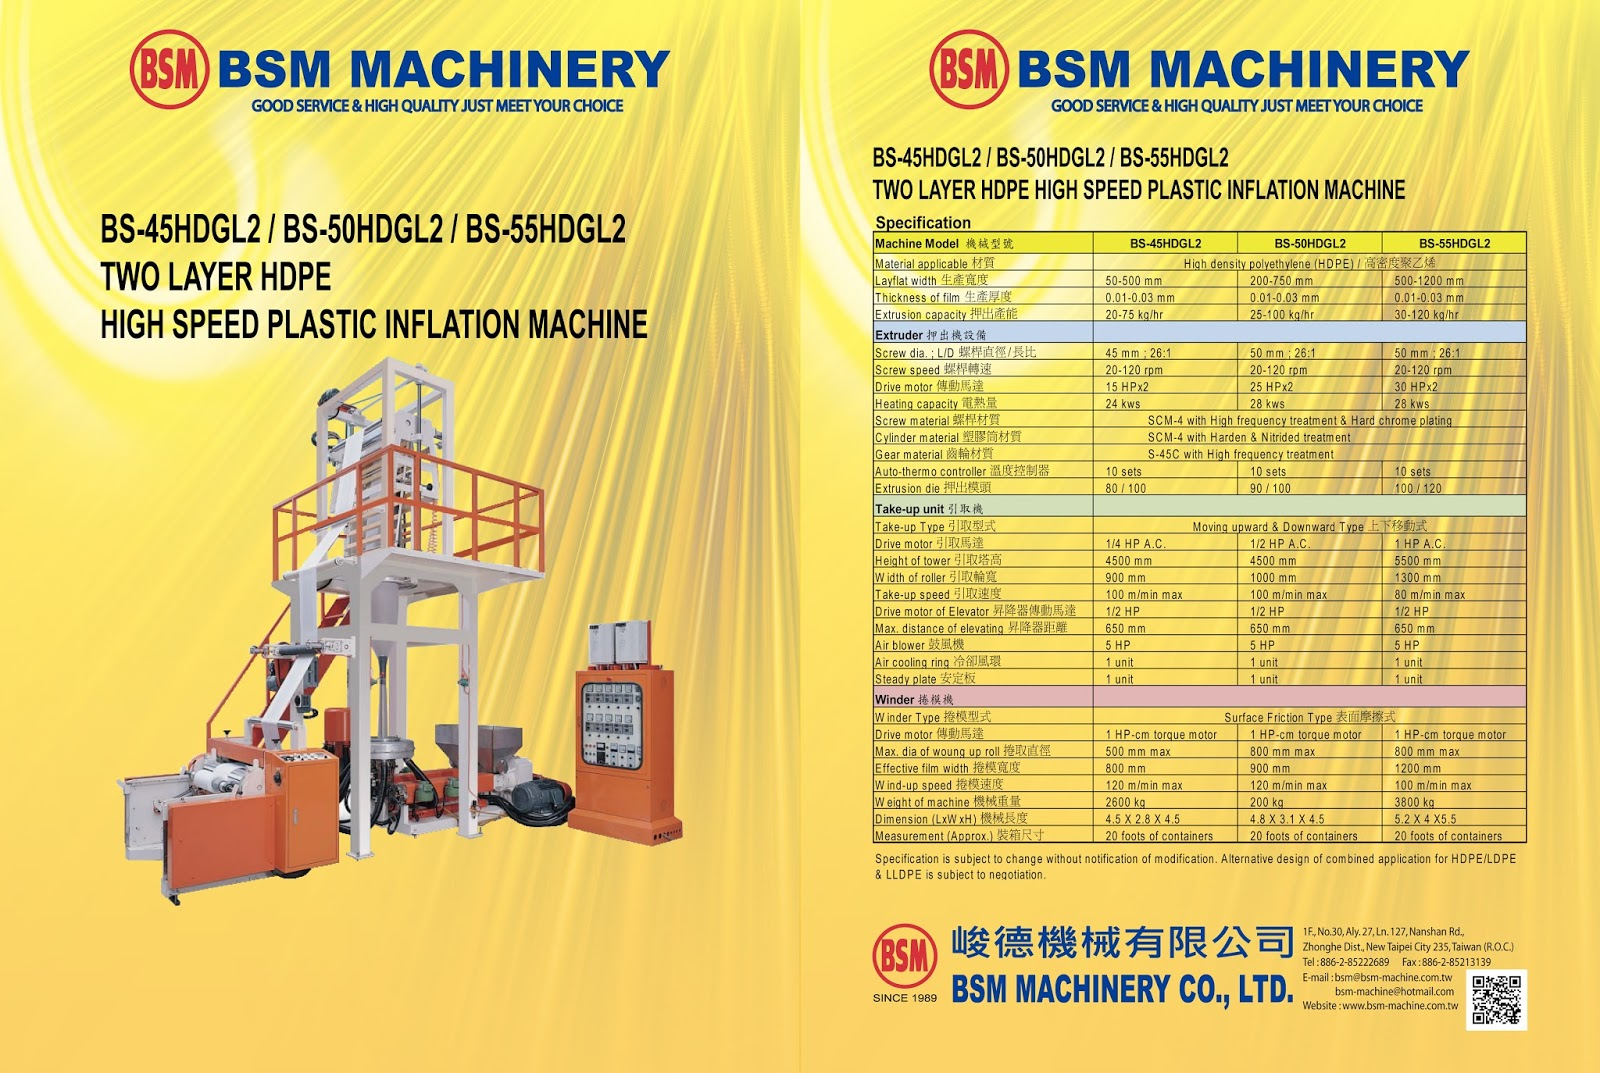 BS-45HDGL2 / BS-50HDGL2 / BS-55HDGL2  TWO LAYER HDPE HIGH SPEED PLASTIC INFLATION MACHINE